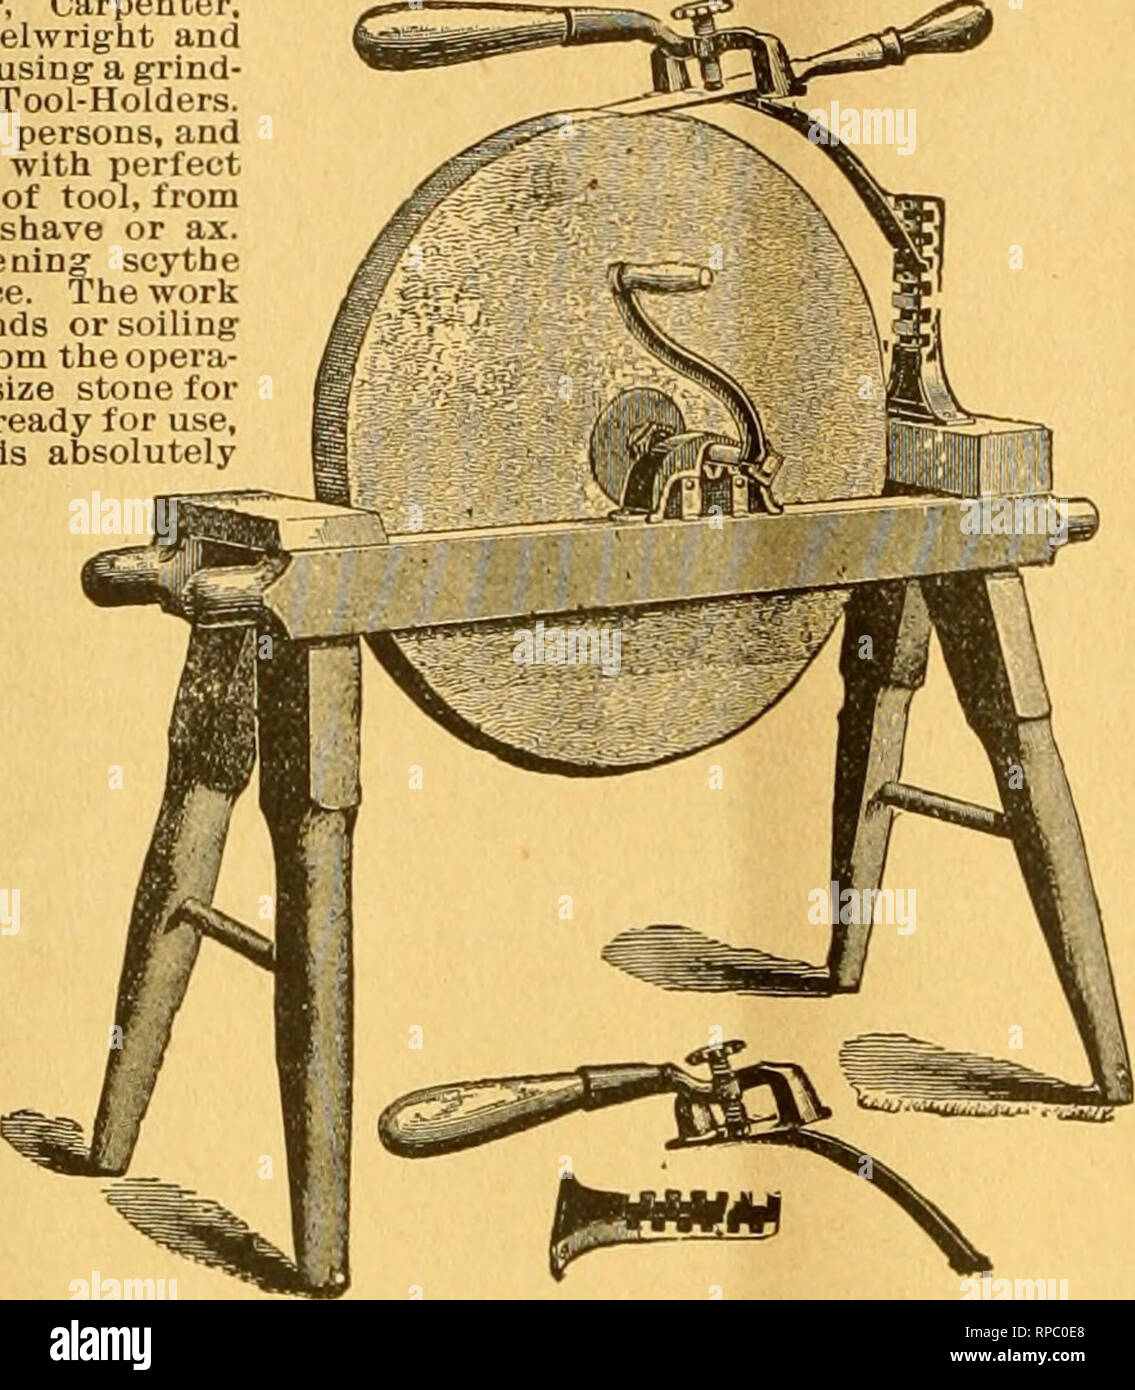 . American bee journal. Bee culture; Bees. 446 THE AMERICAN BEE JOURNAL. July 'J, A HANDY TOOL-HOLDER! Seut by Express, for $1.50 ; or Avifii tlie Bee Journal one year—both for $2.00. Every Manufacturer, Miller, Carpenter. Cabinet Maker, Machinist. Wheelwright and ? Quarryman, Farmer, or any one using- a grind- stone, should have one of those Tool-Holders. One boy can do the work of two persons, and grind much faster, easier and with perfect accuracy. Will hold any kind of tool, from the smallest chisel to a draw shave or ax. Extra attachment lor sharpening- scythe blades included ia the above - Stock Image